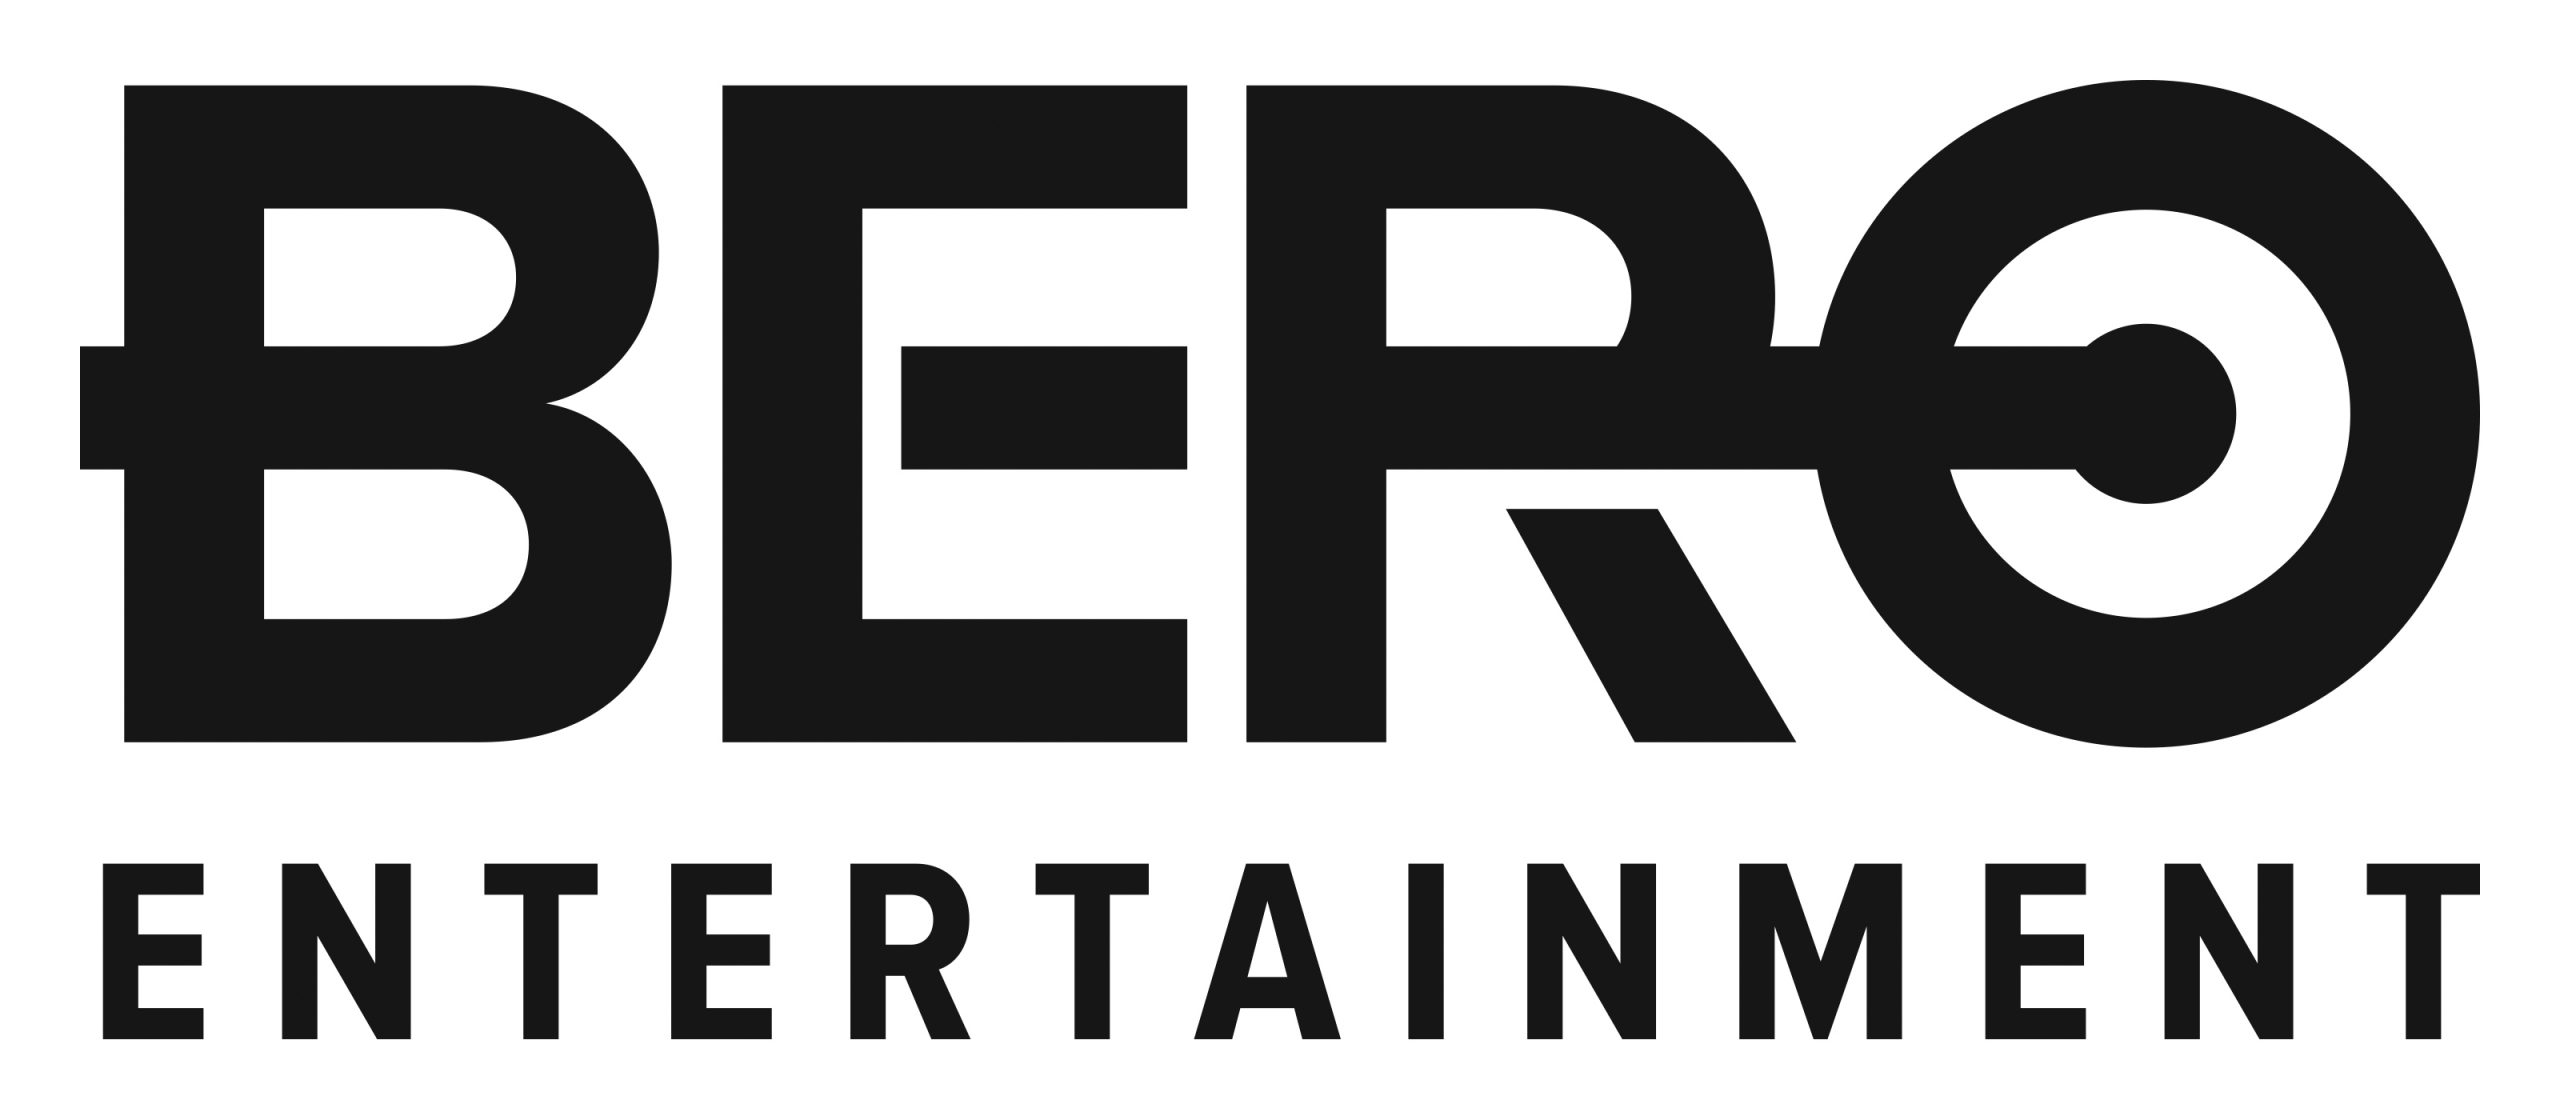 BECKON ENTERTAINMENT AND ROMEO ENTERTAINMENT GROUP JOIN FORCES WITH NEW BERO VENTURE, OFFERING COMPREHENSIVE EVENT SERVICES TO FESTIVALS, CORPORATE, AND PRIVATE CLIENTS